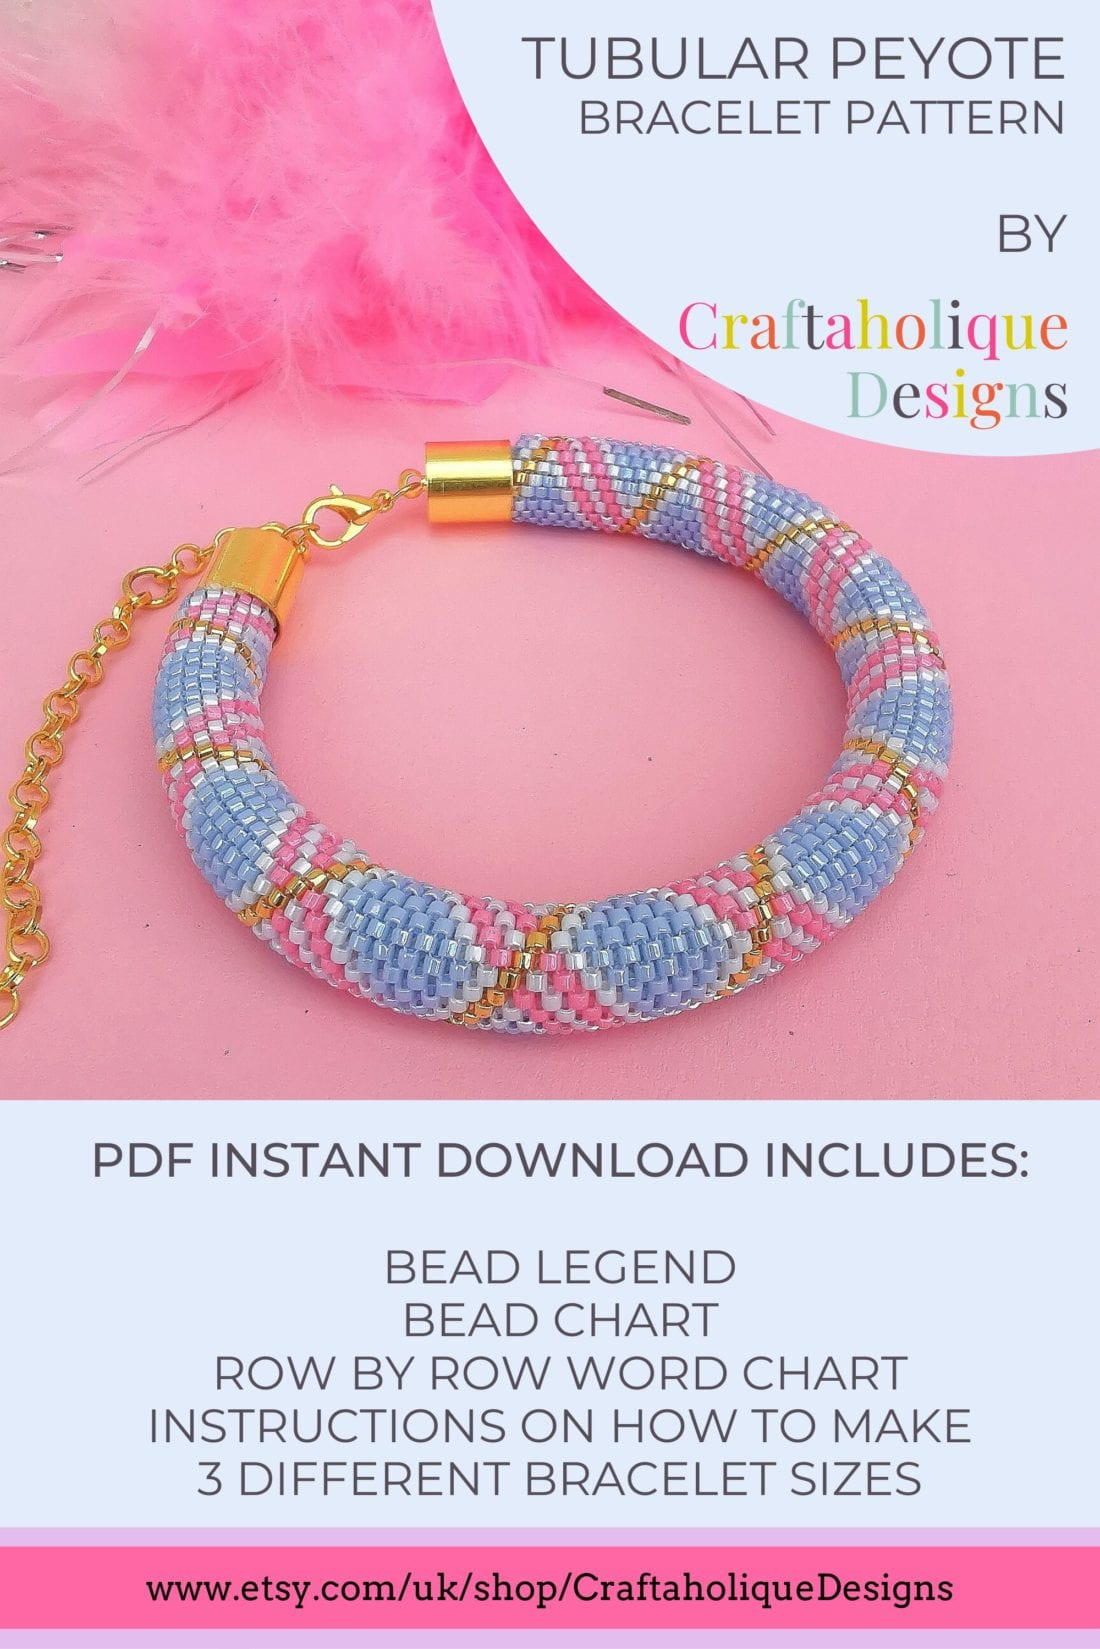 Tubular peyote bracelet pattern. This pattern uses miyuki delicas in pretty pastel shades of blue, pink and gold. Make this as the perfect accessory to go with your spring or summer outfits!